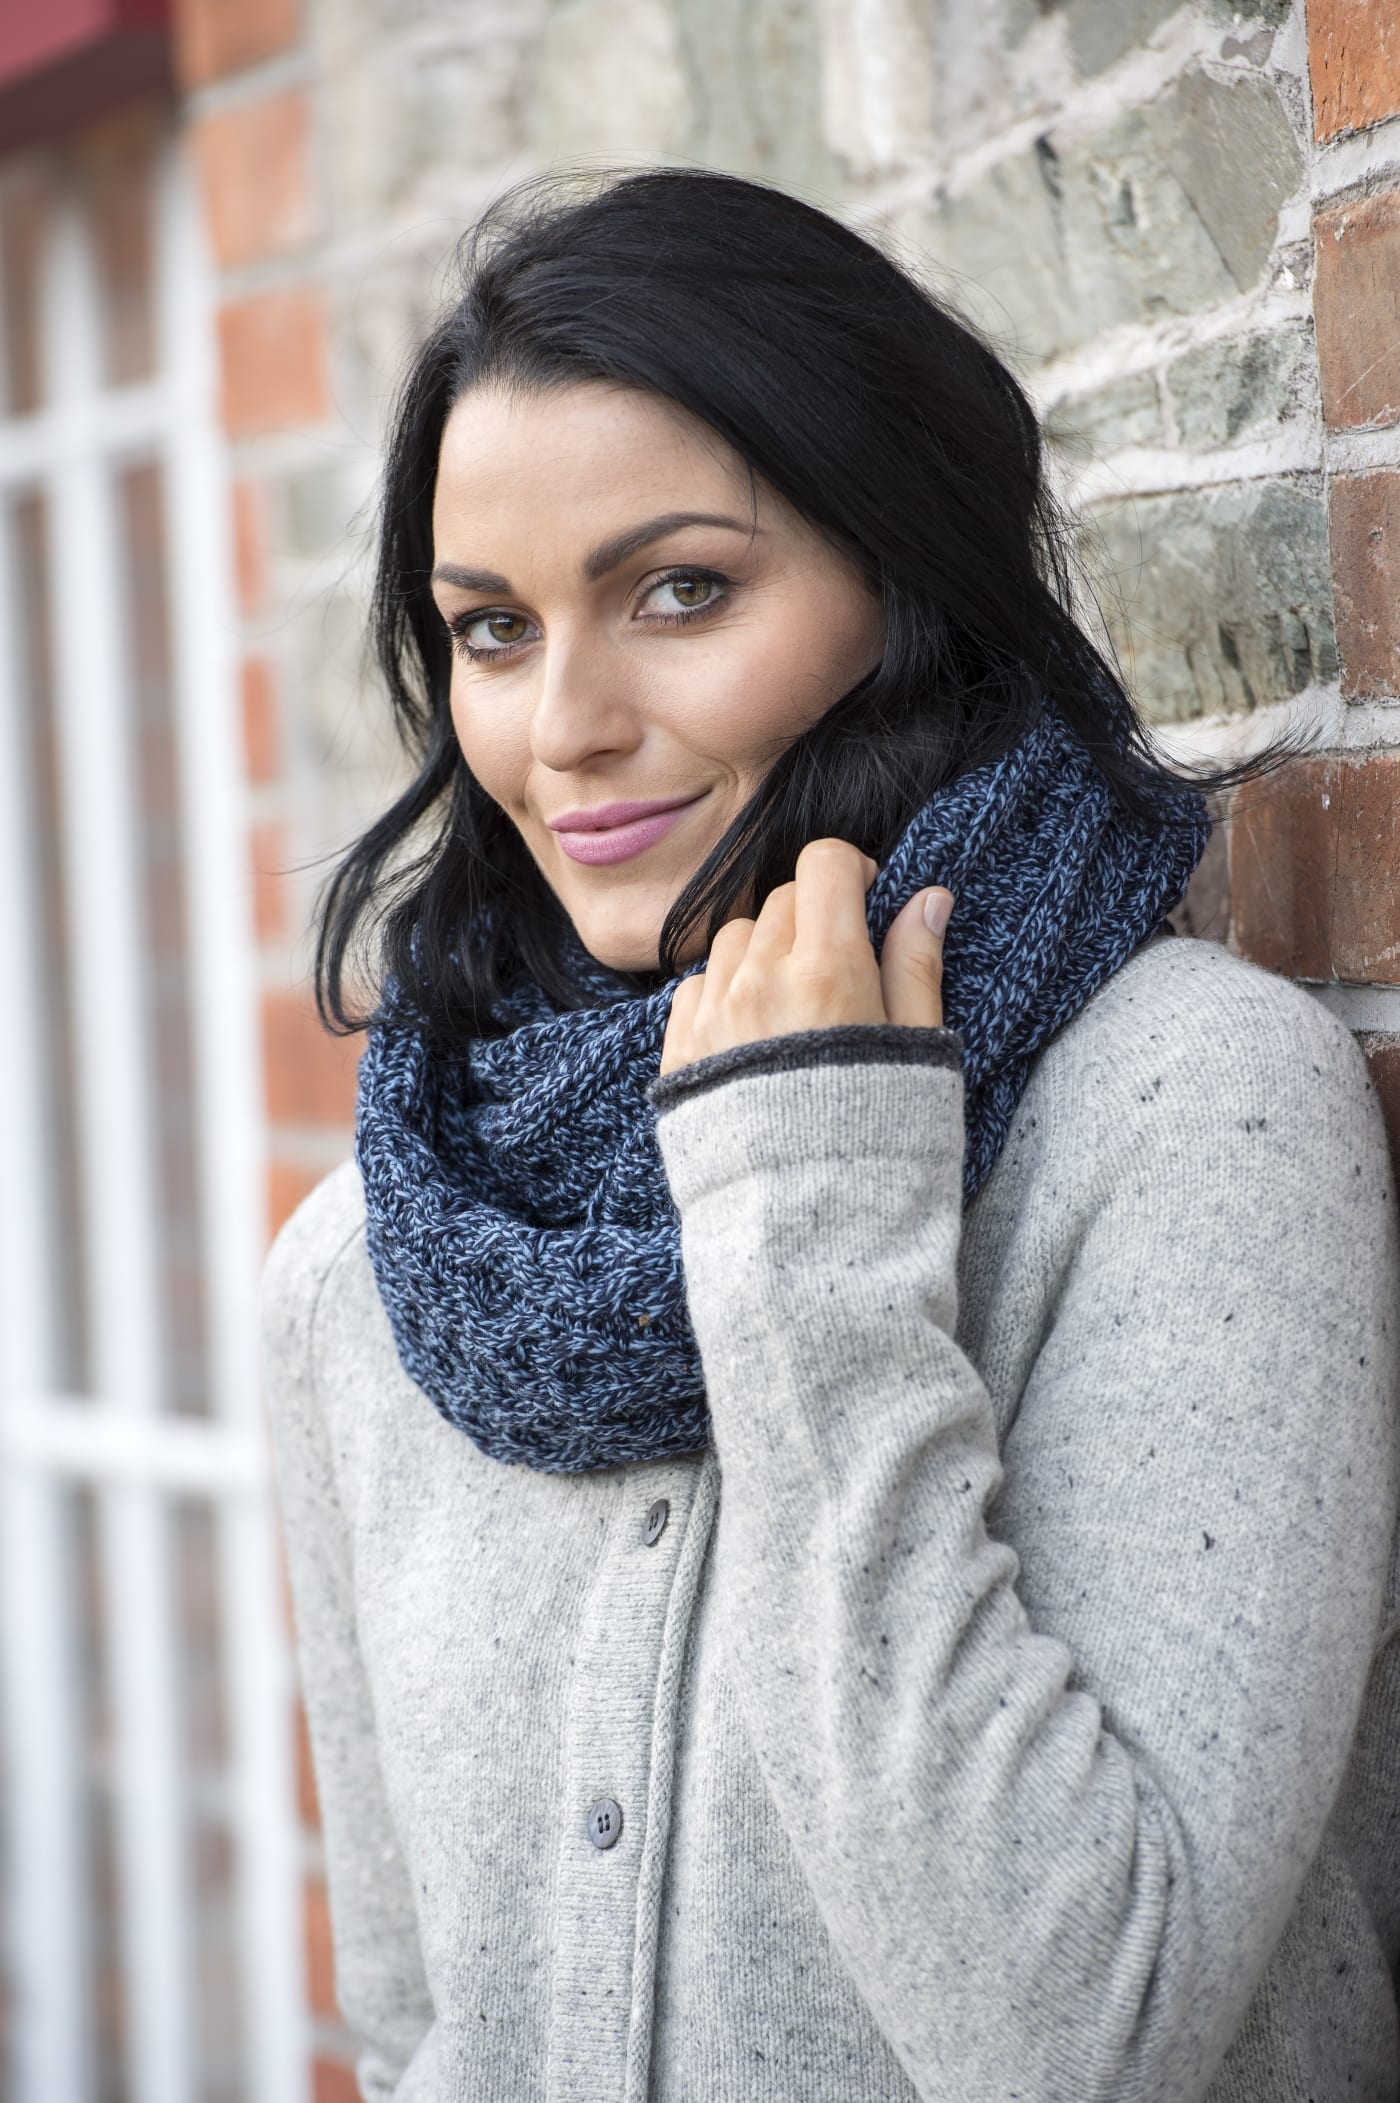 Shawl vs Wrap vs Stole vs Scarf…What's the difference?